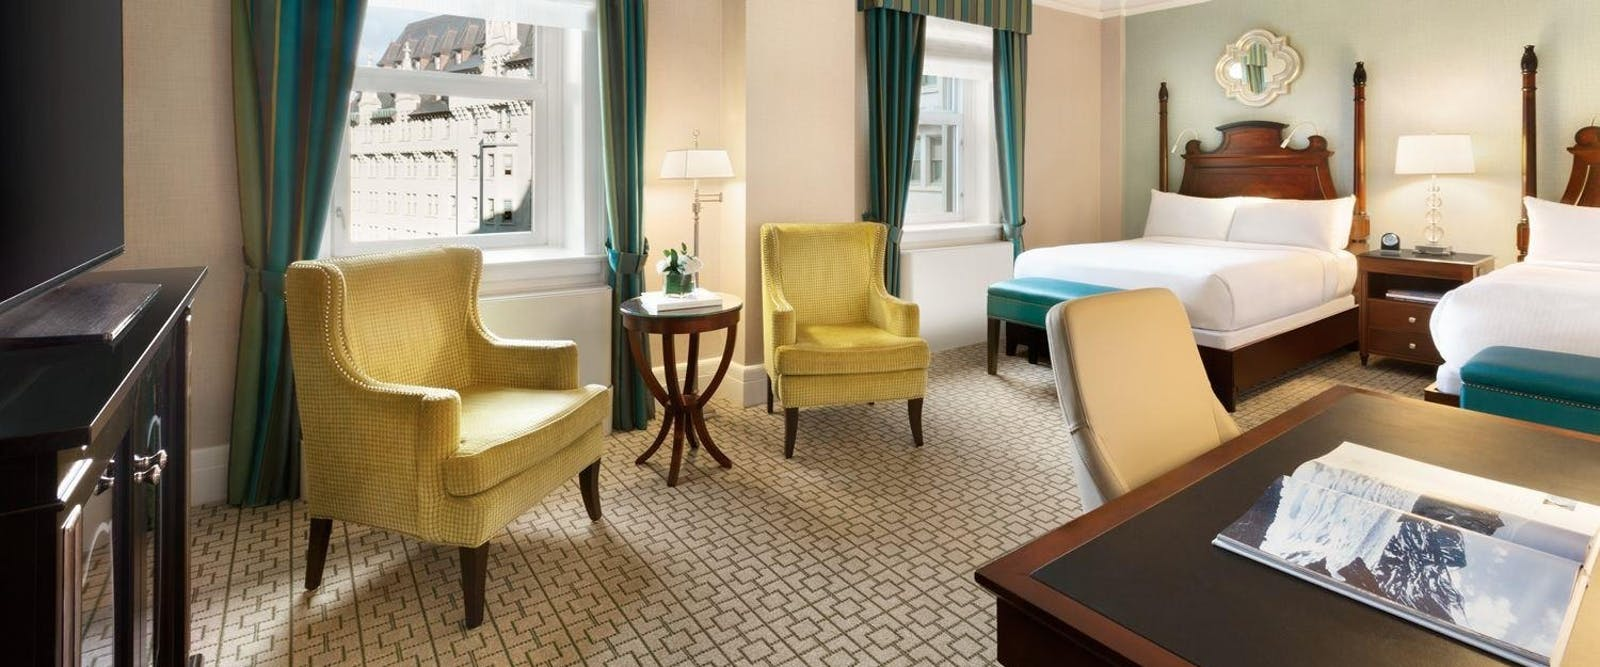 Deluxe Double Room at Fairmont Chateau Laurier, Ontario